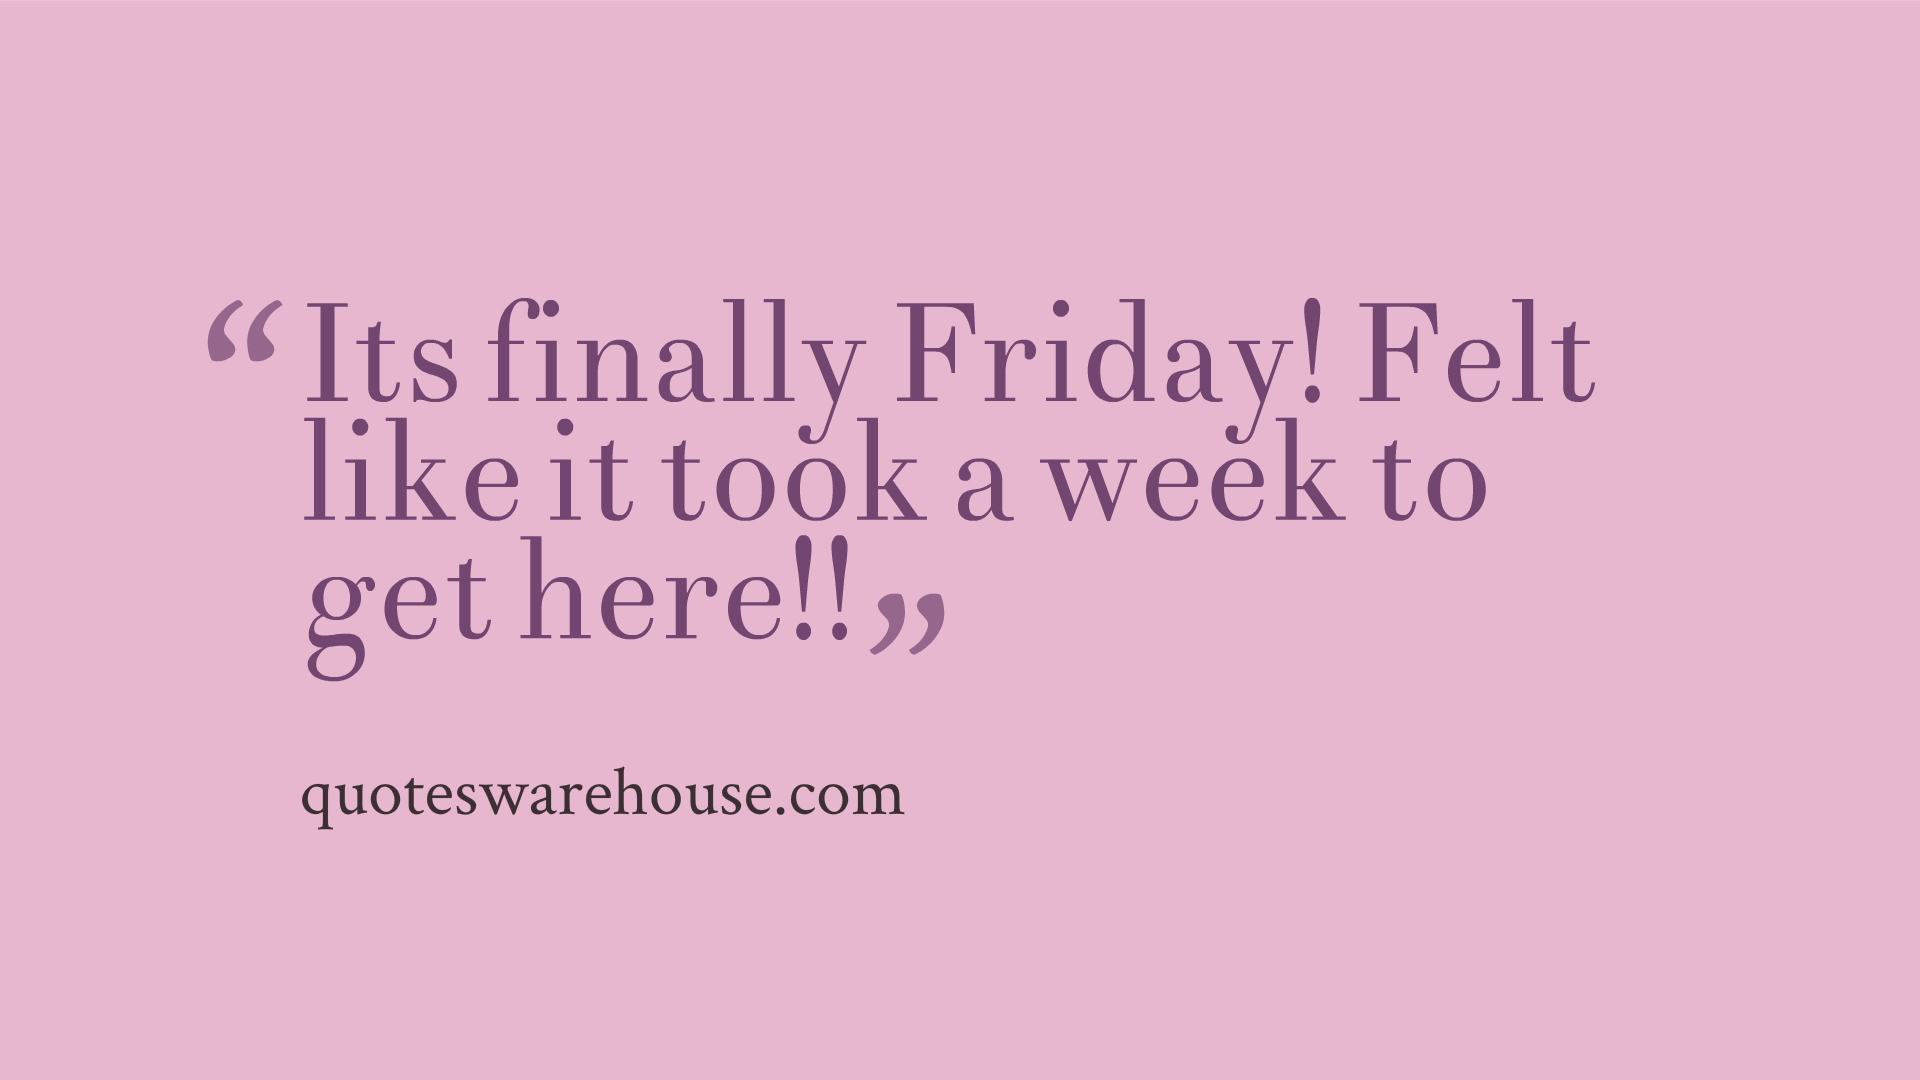 Finally Friday FinallyFriday.png Its friday quotes